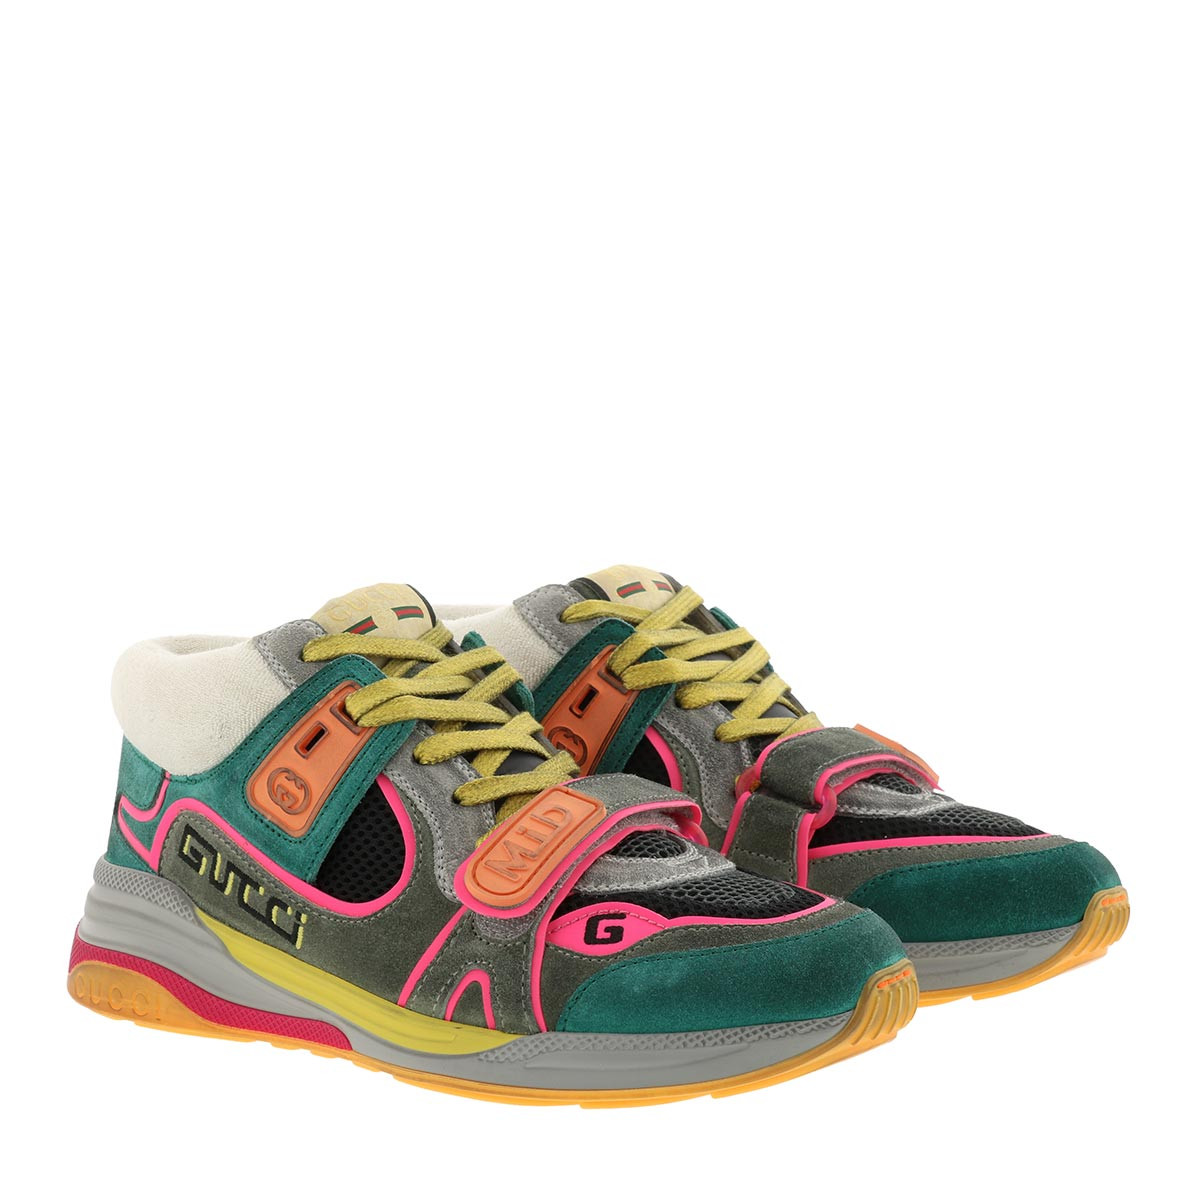 Gucci Sneakers - Ultrapace Mid Top Sneaker Leather Multi - in bunt - für Damen